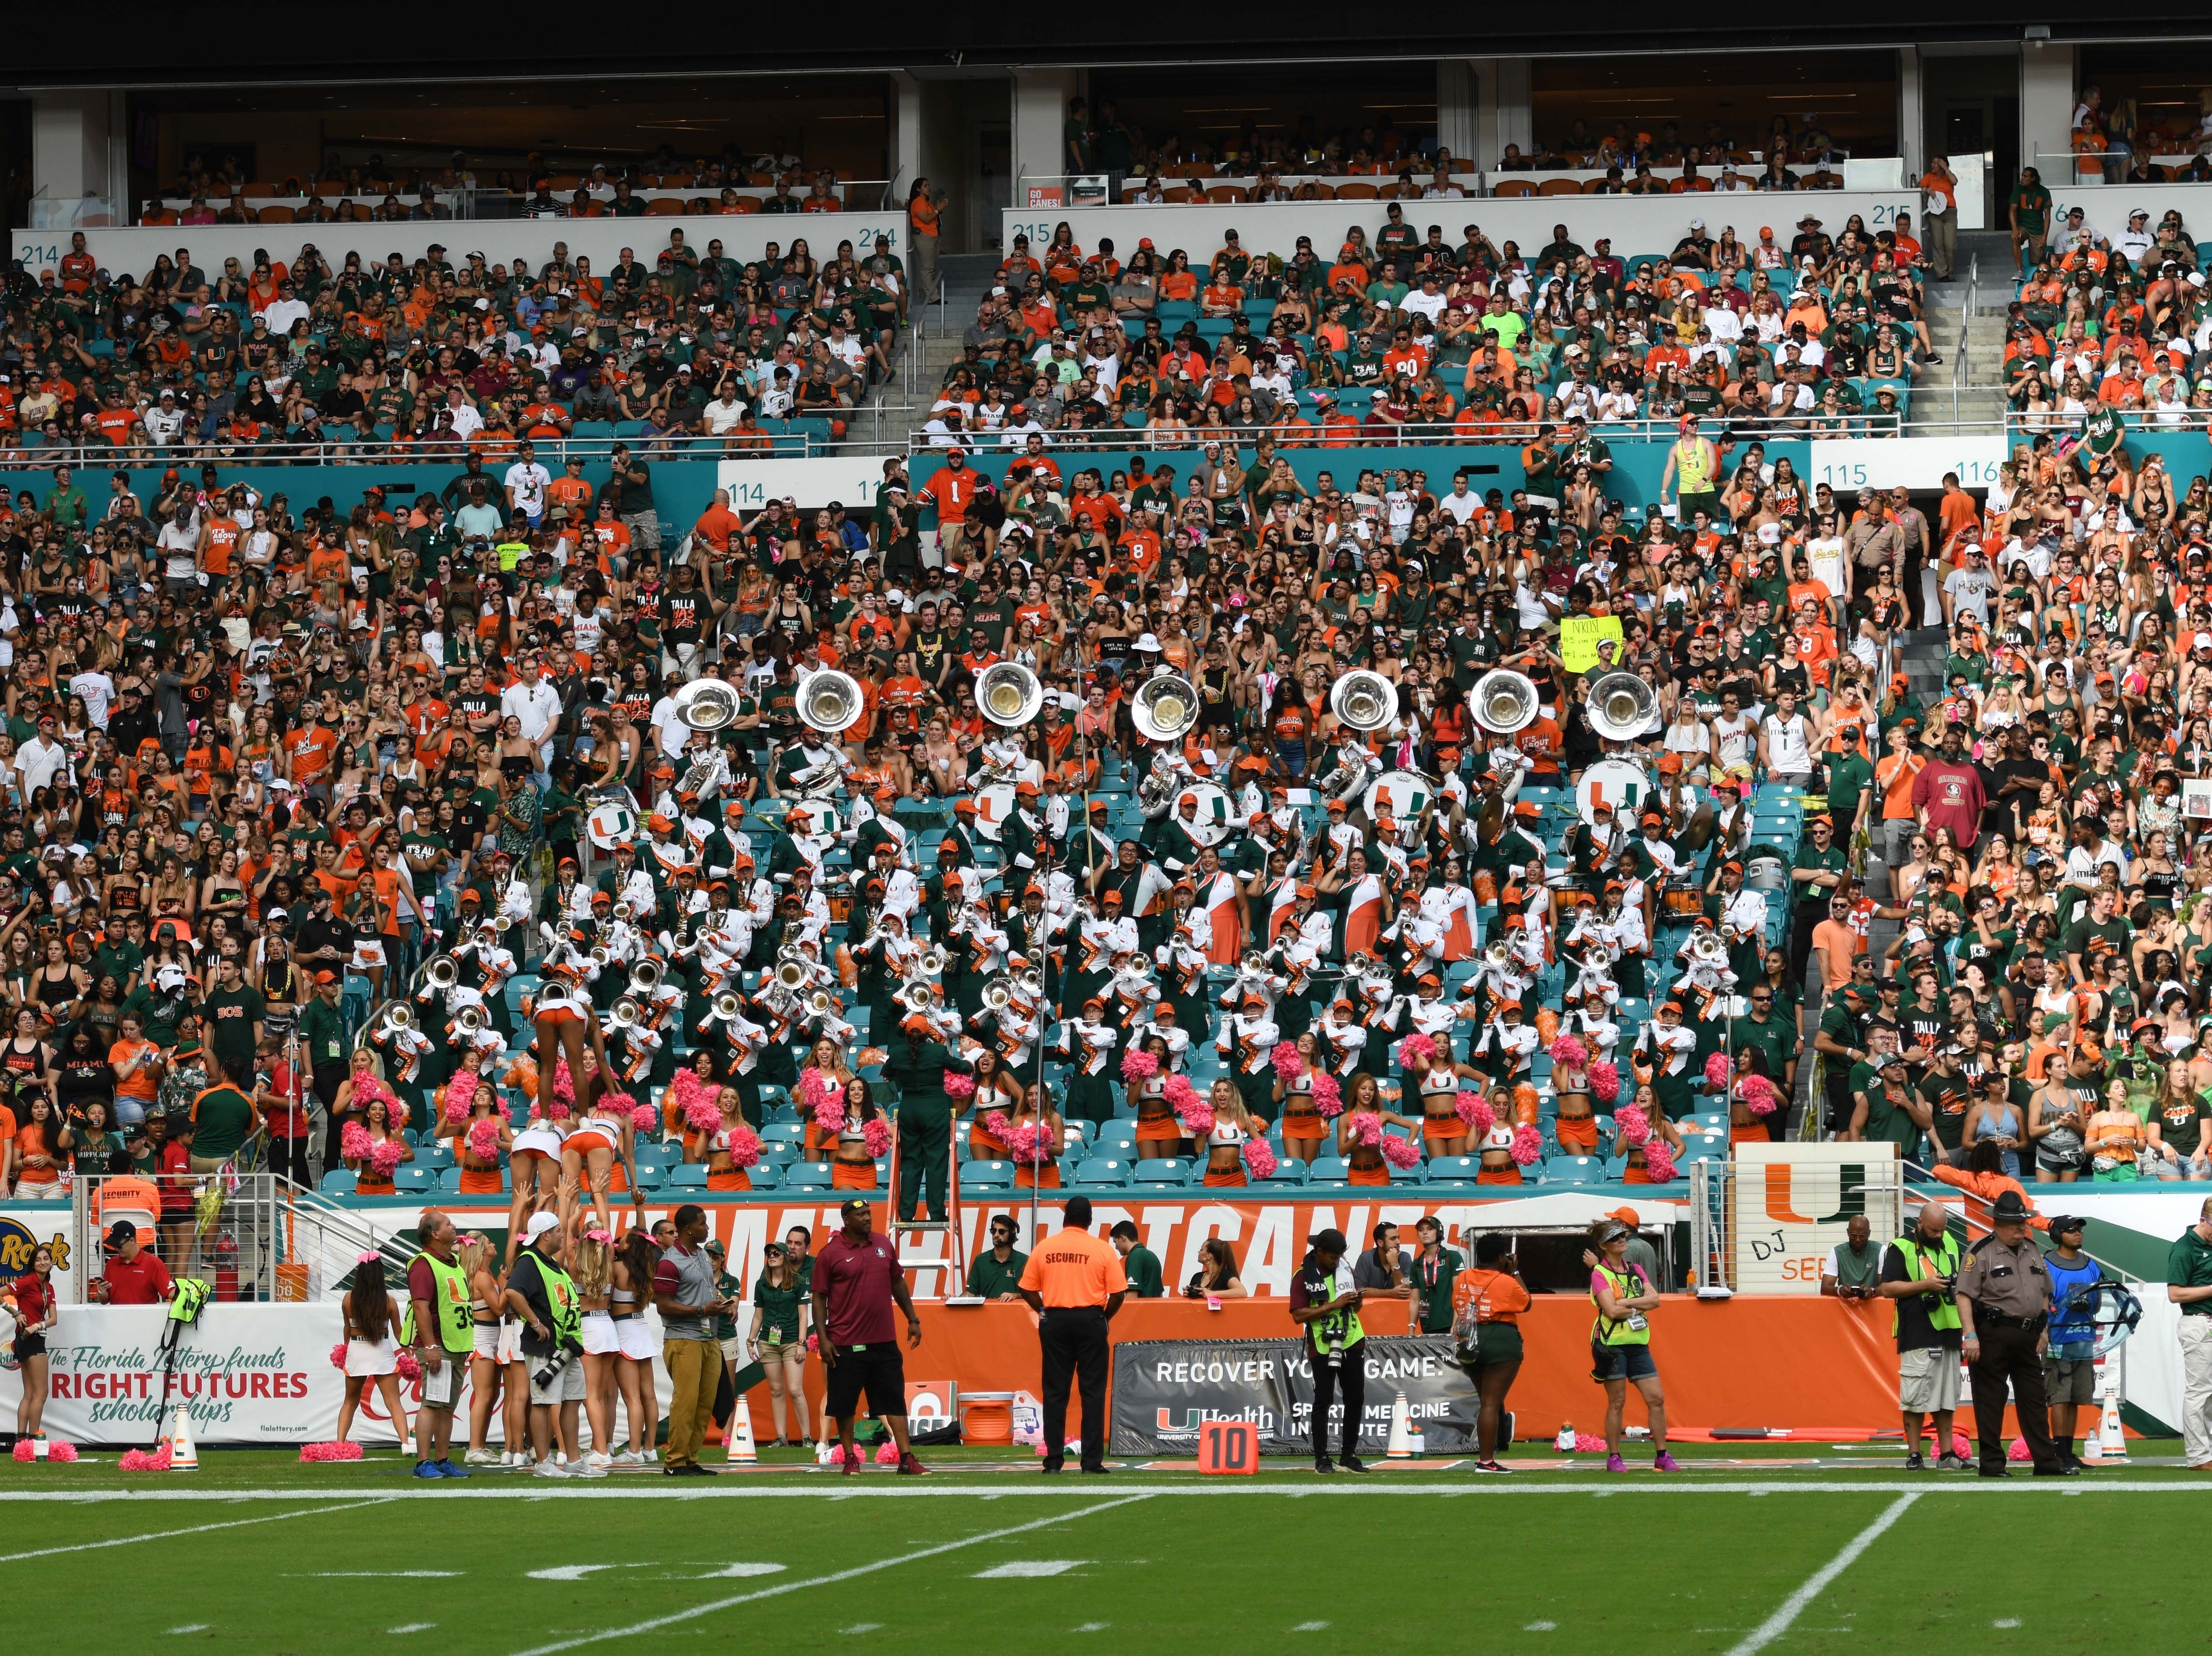 The Miami Hurricanes' fans were loud and pumped up during the rivalry FSU game against Miami at the Hard Rock Stadium on October 6th 2018.